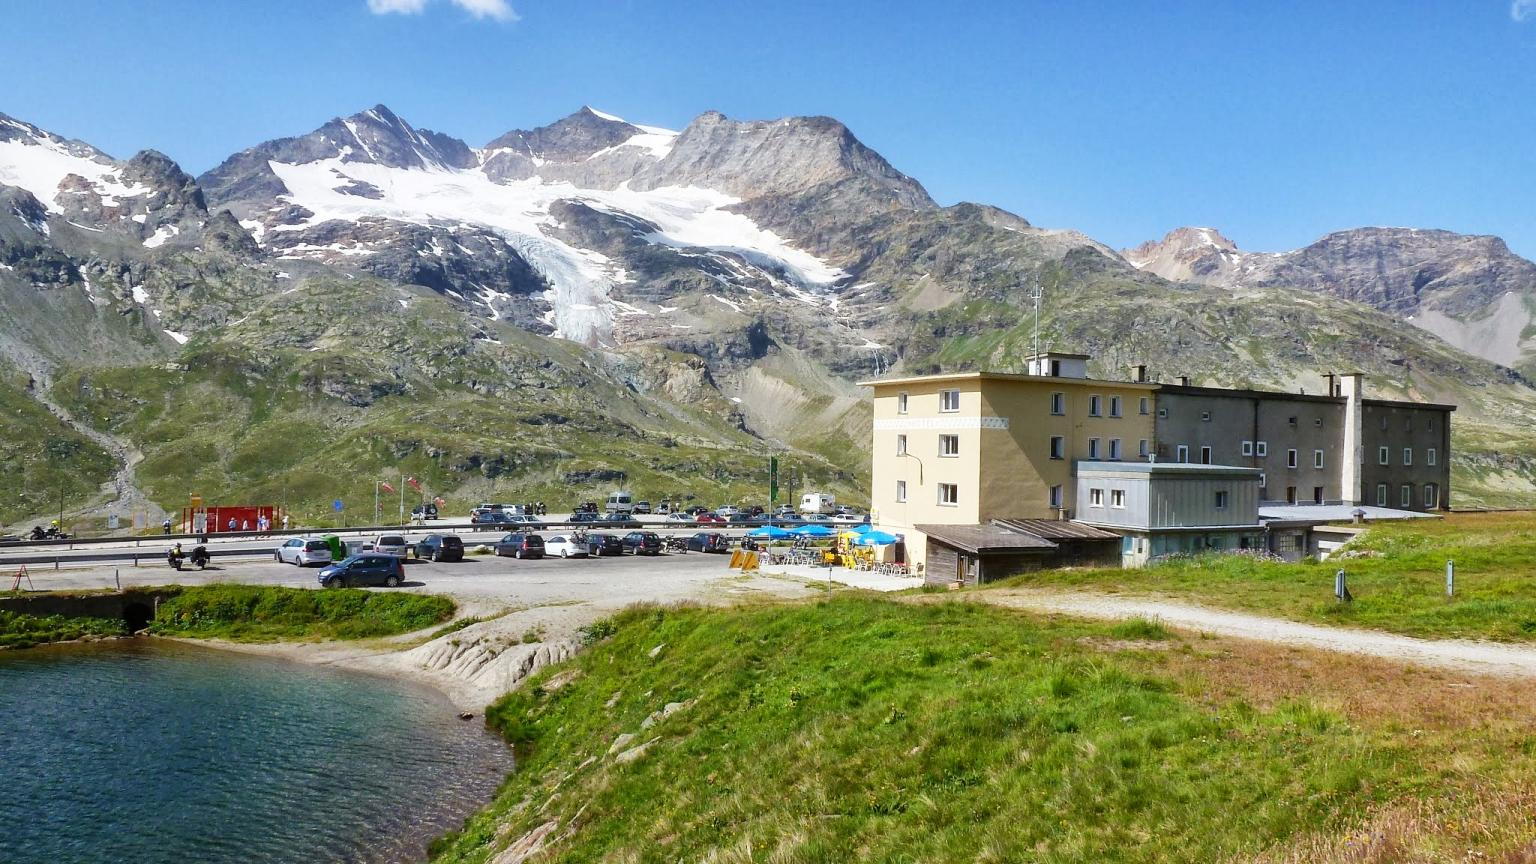 bernina-pass-2328m--- Route Photo